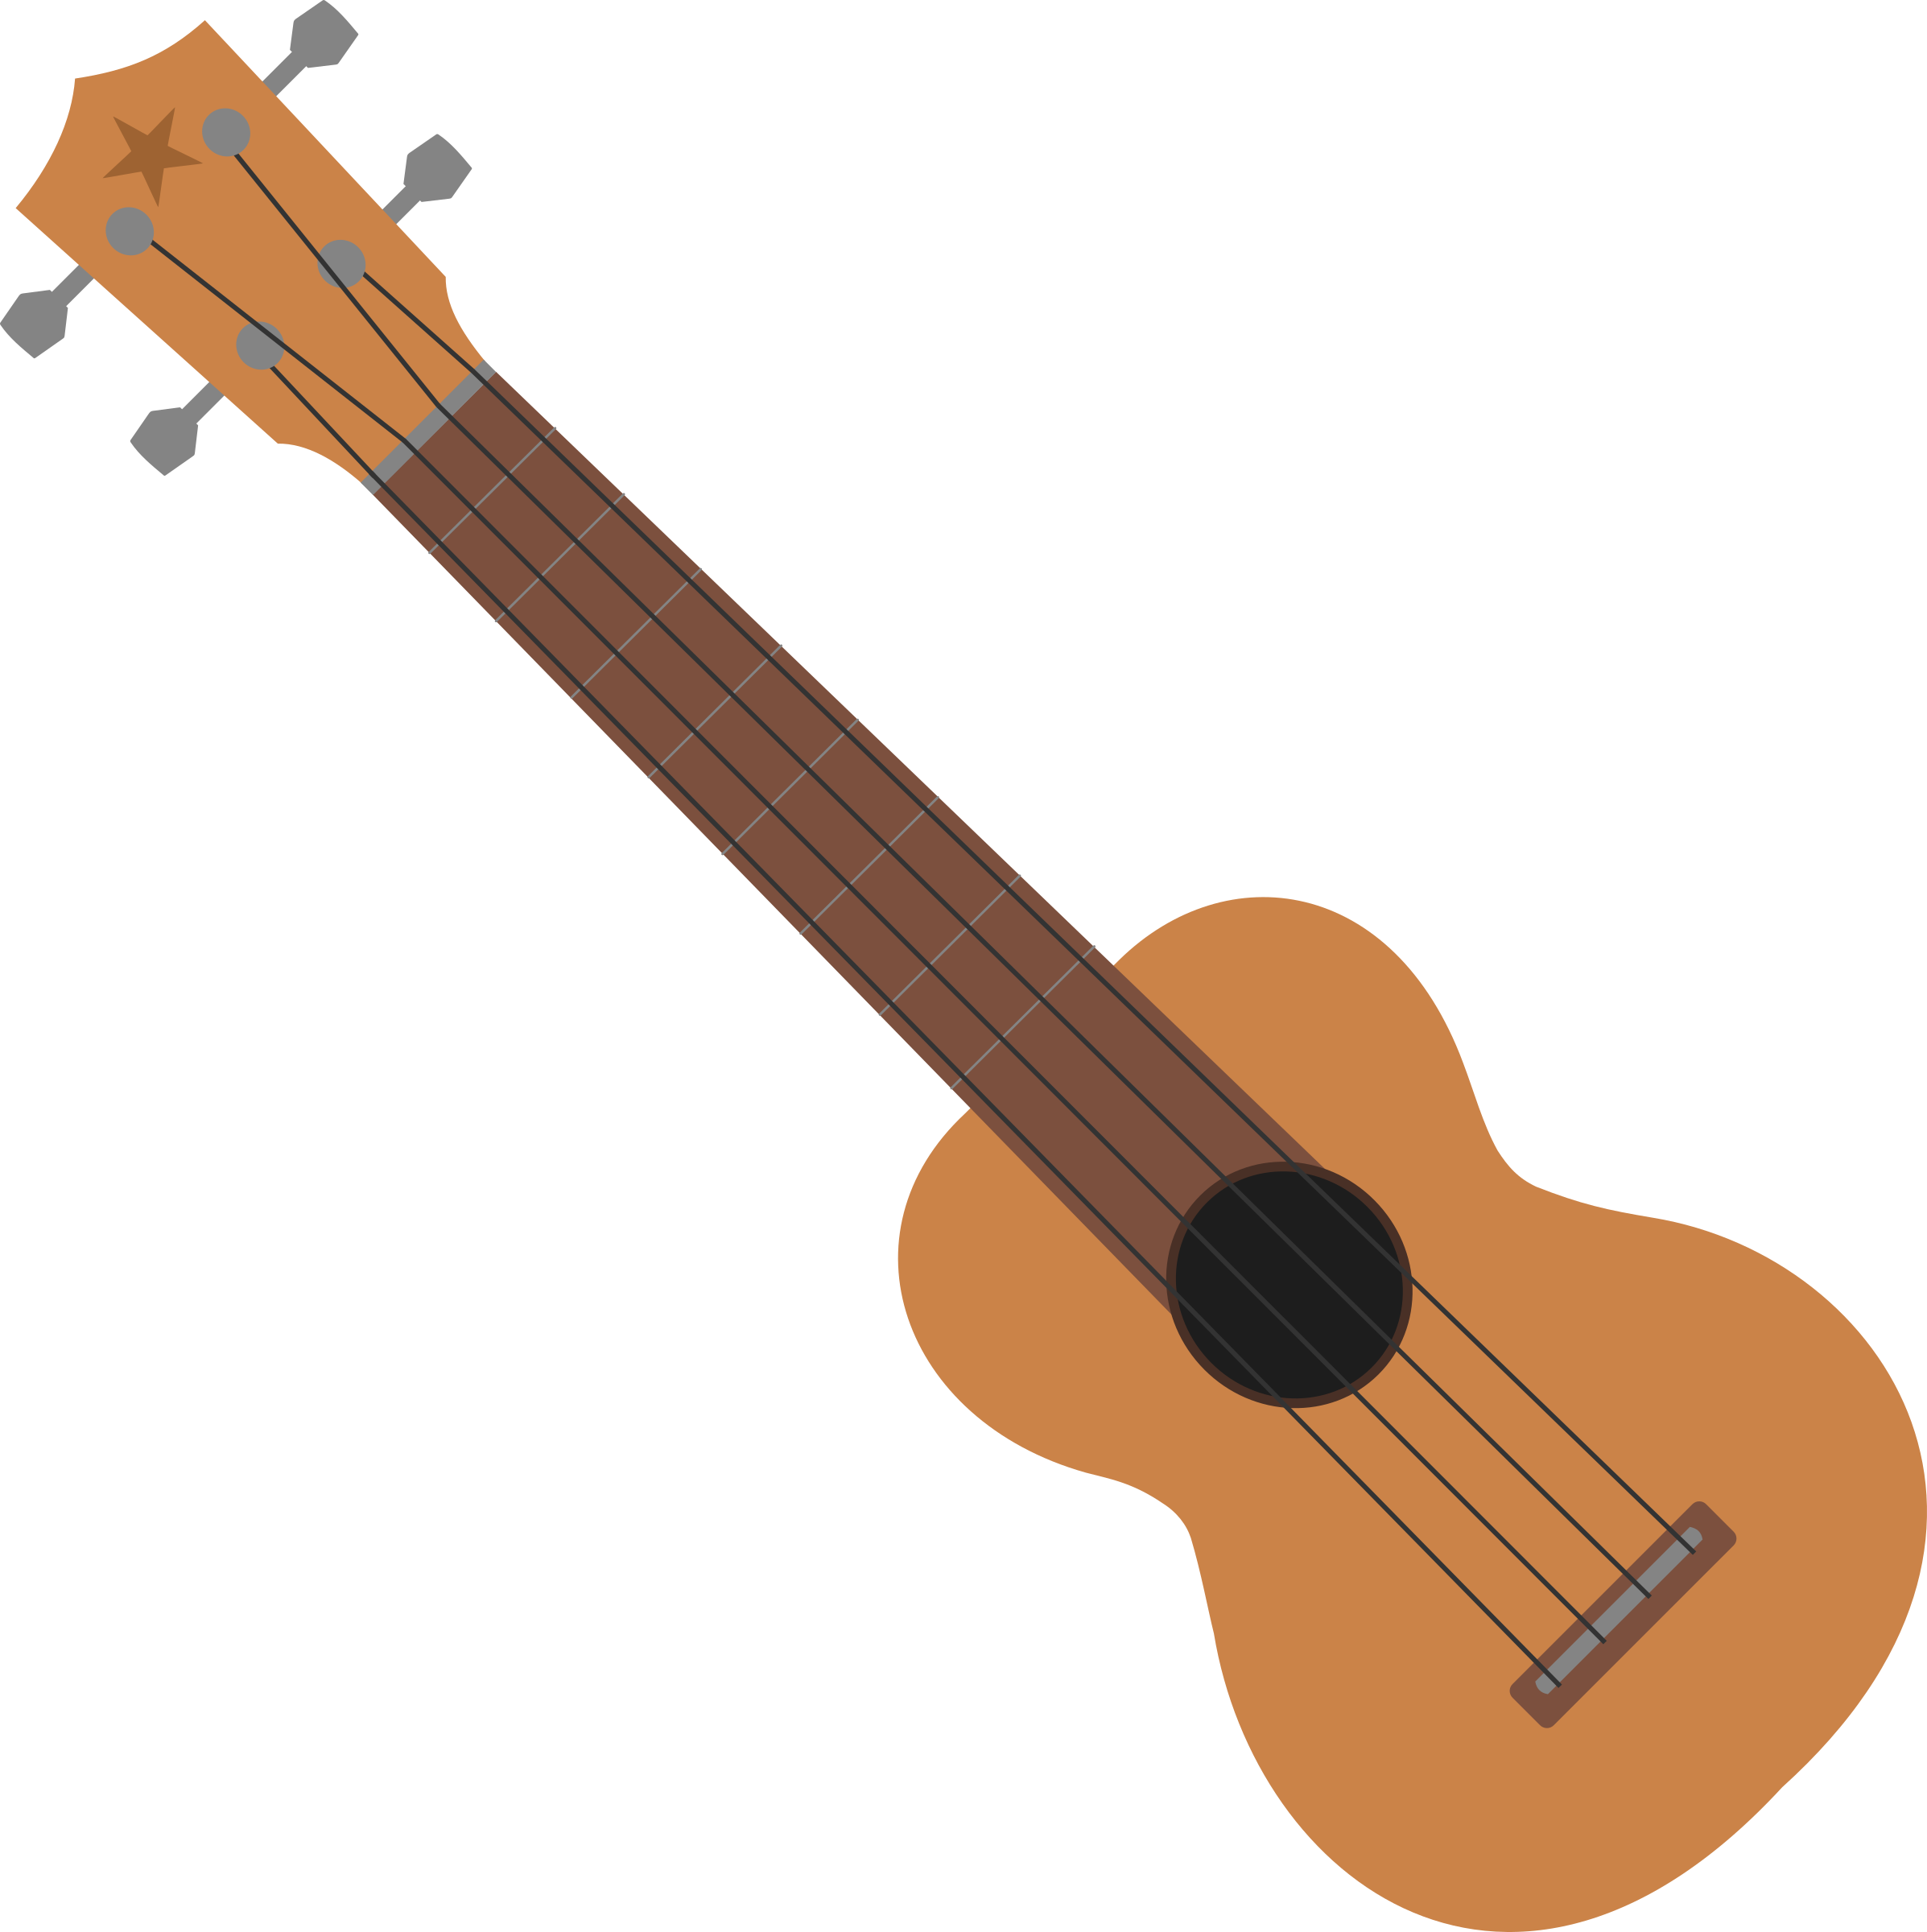 Simple Ukulele No Outline by qubodup